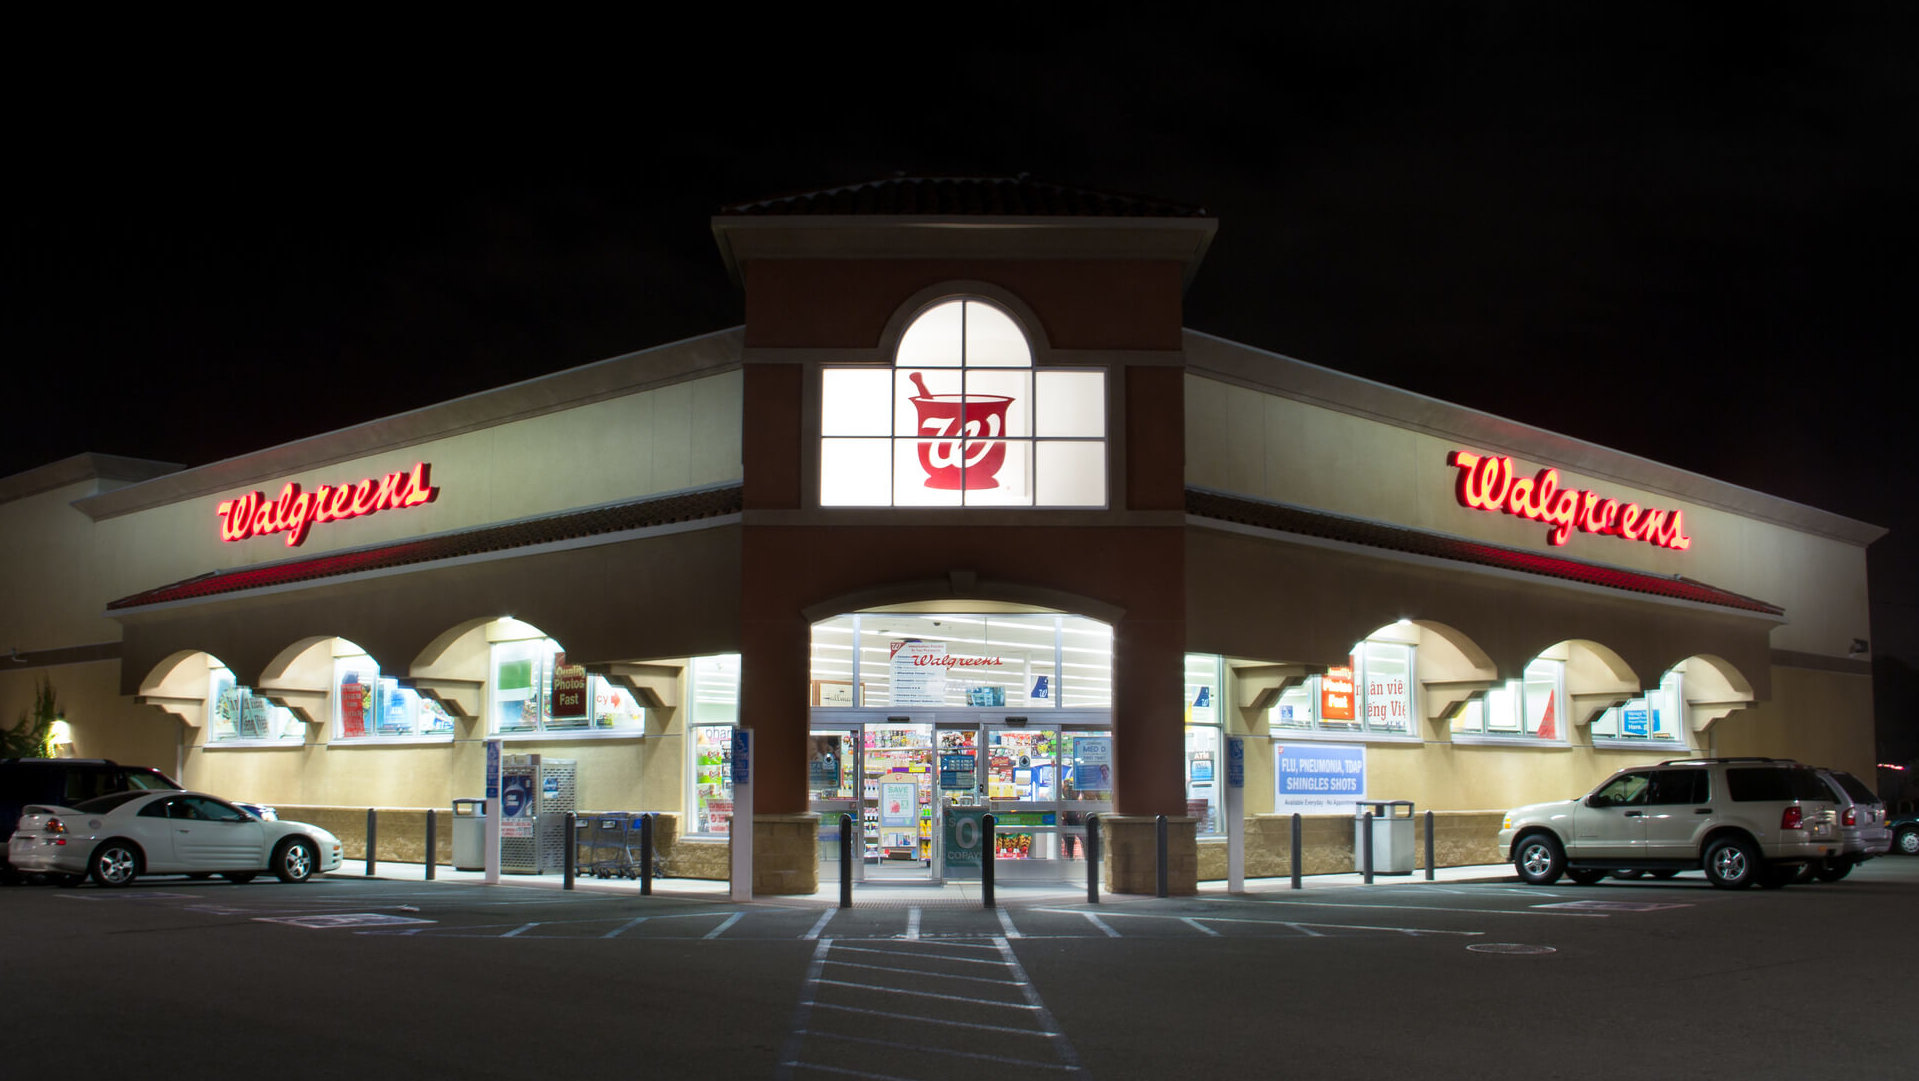 Walgreens store and parking lot at night.